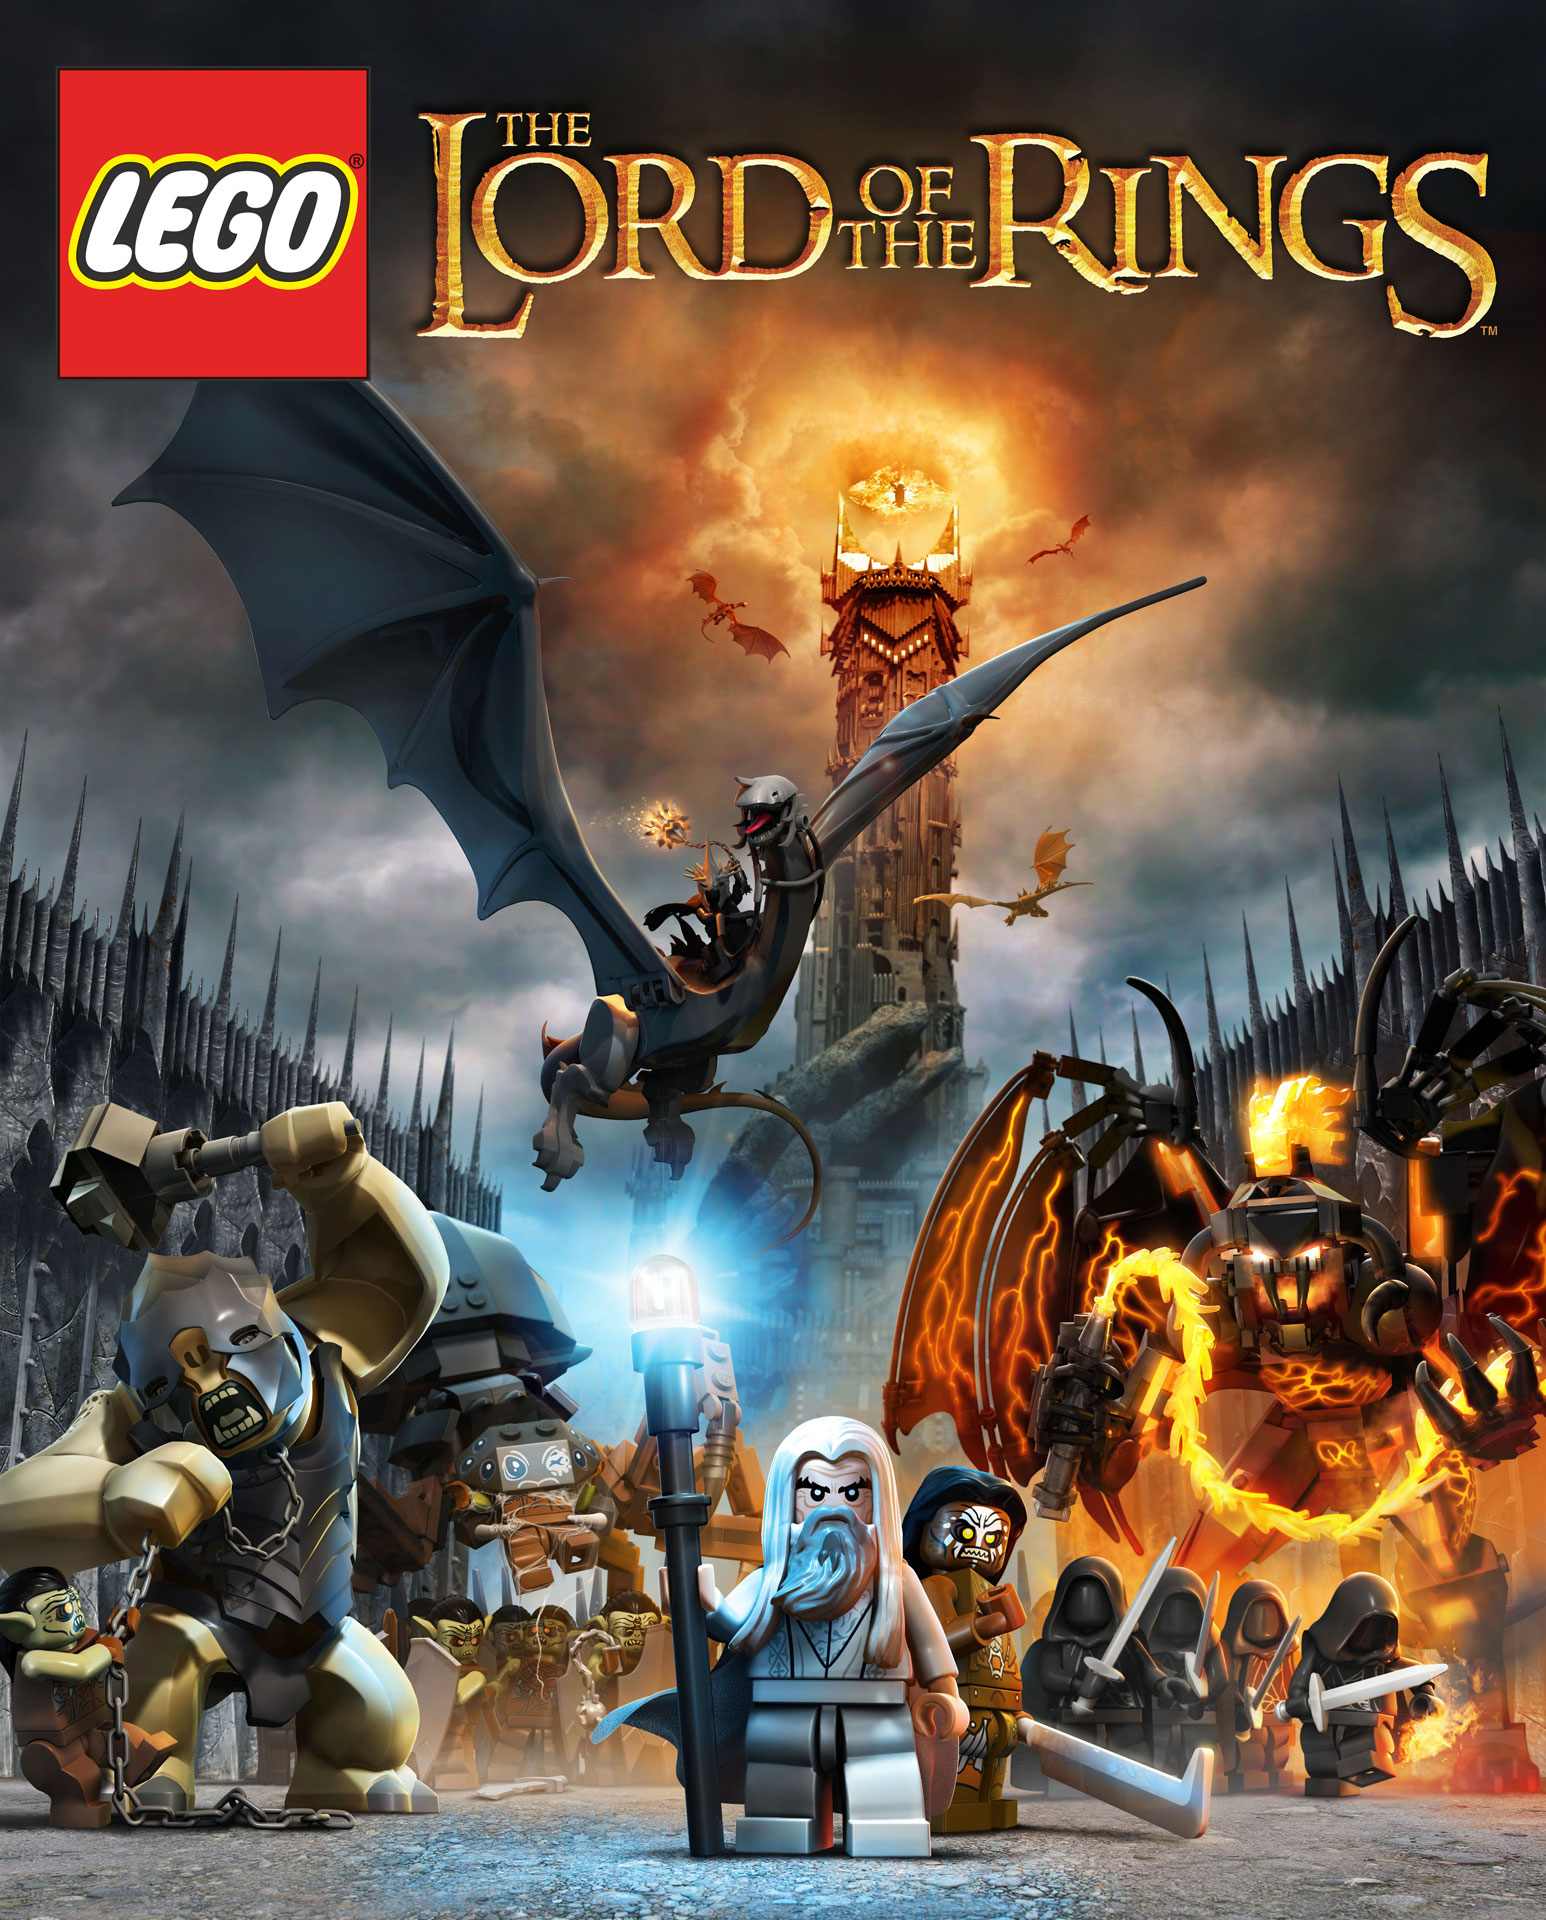 LEGO Lord of the Rings Monsters and Villains Poster Attacks